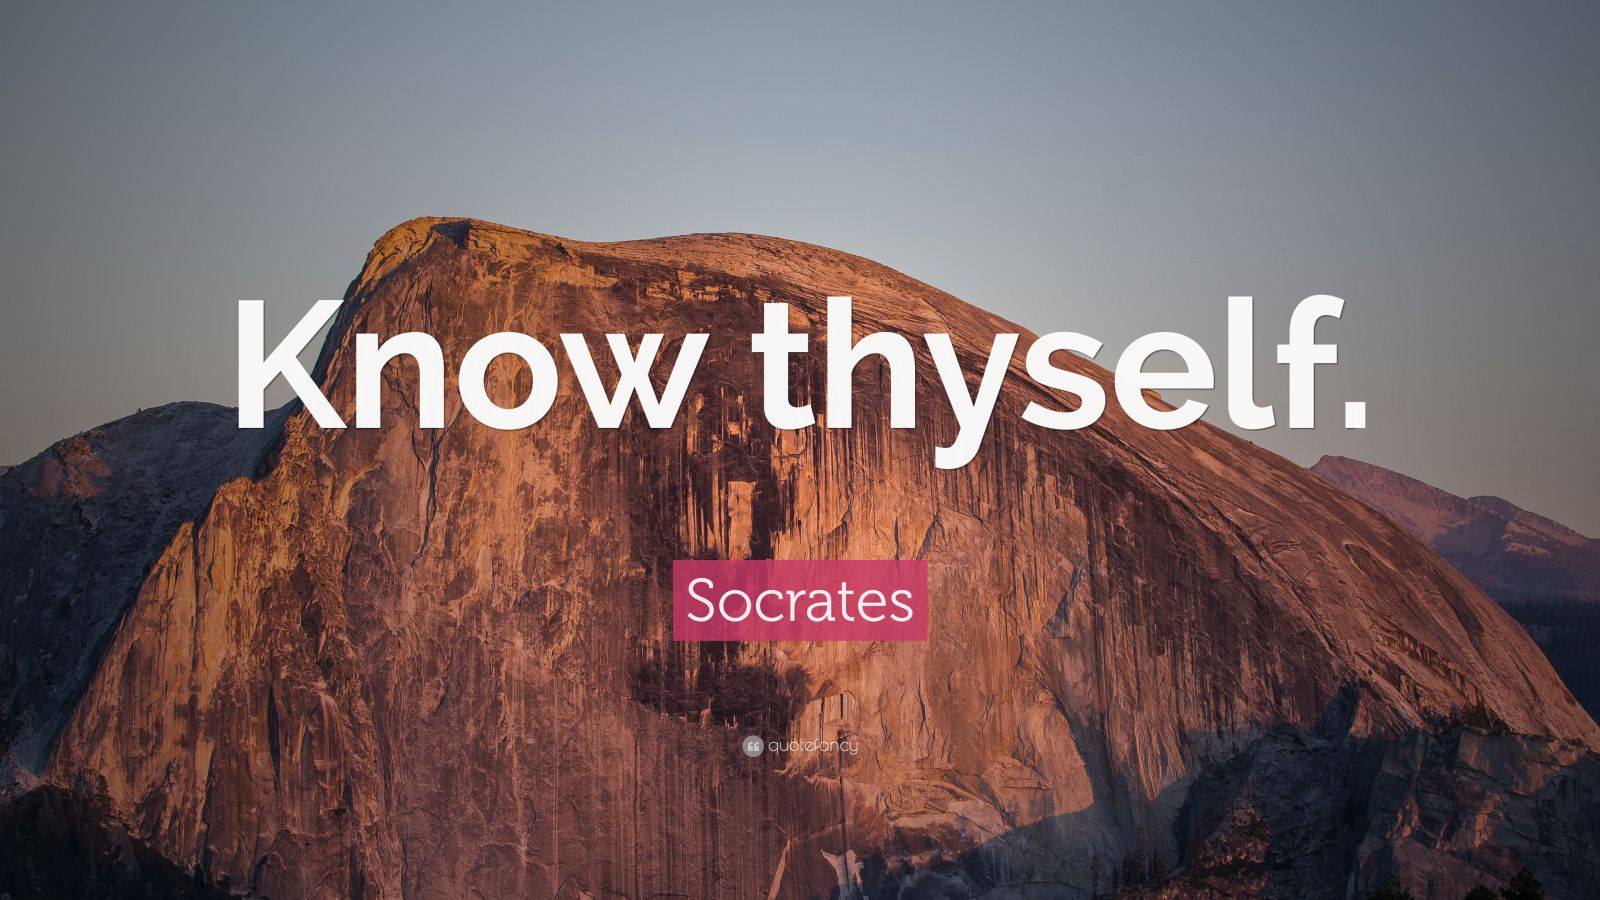 Dalai Lama Wallpaper Quotes Socrates Quote Know Thyself 32 Wallpapers Quotefancy